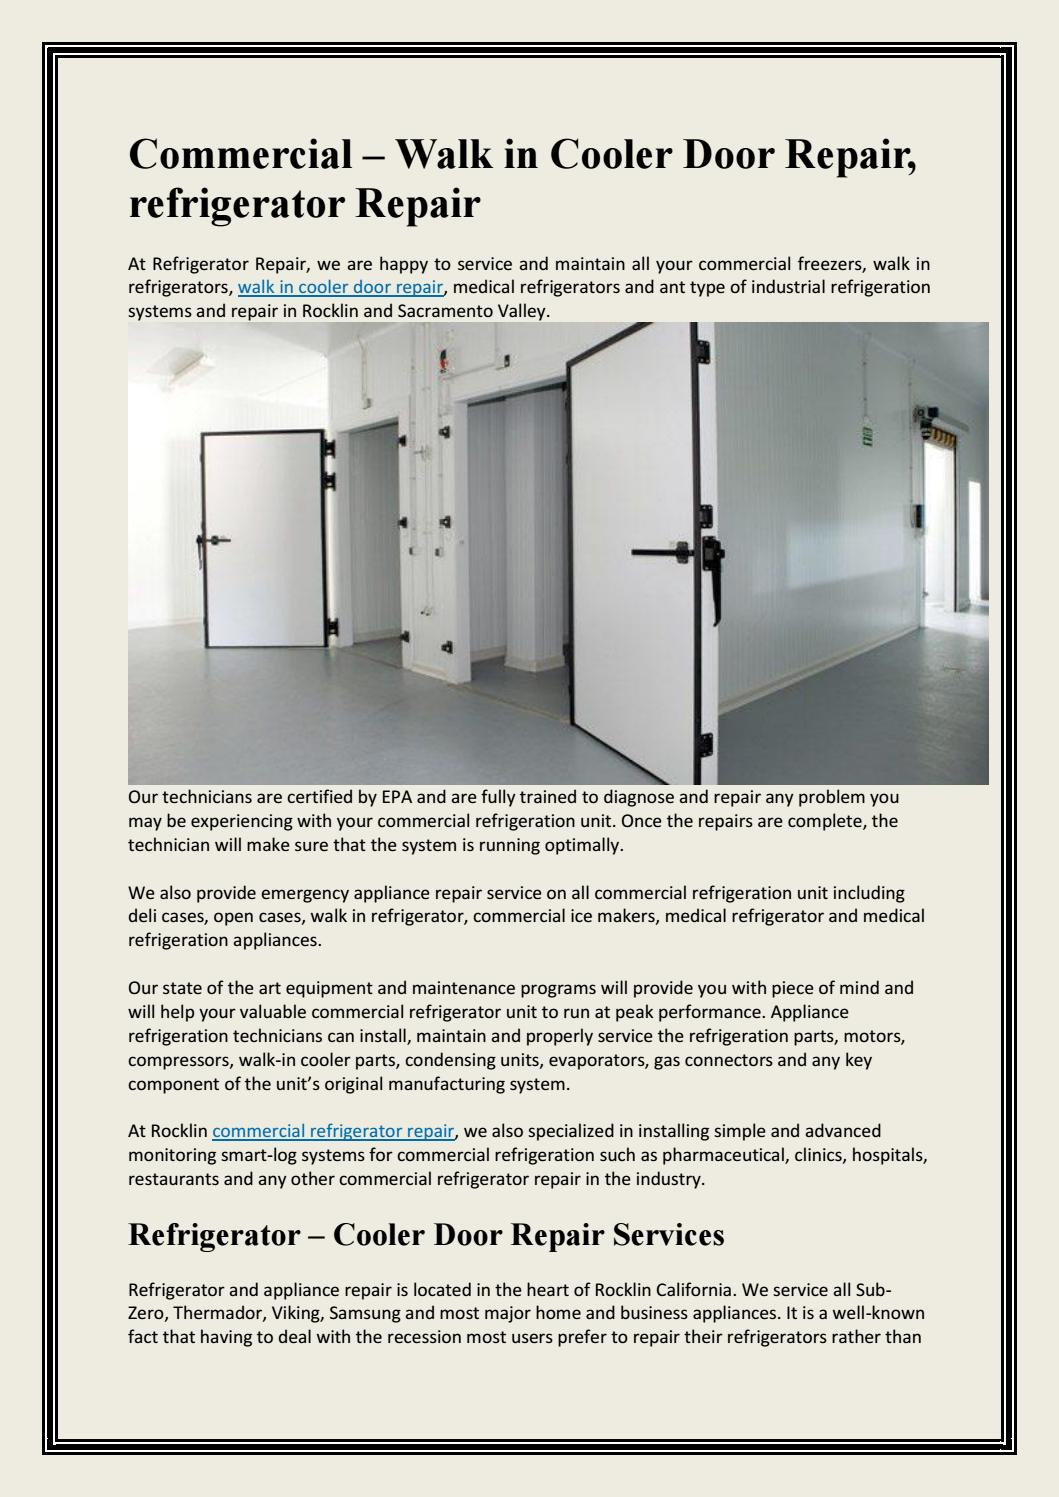 Commercial Walk In Cooler Door Repair Refrigerator By Installation Condensing Unit And Refrigeration System Rescuerefrigeration Issuu